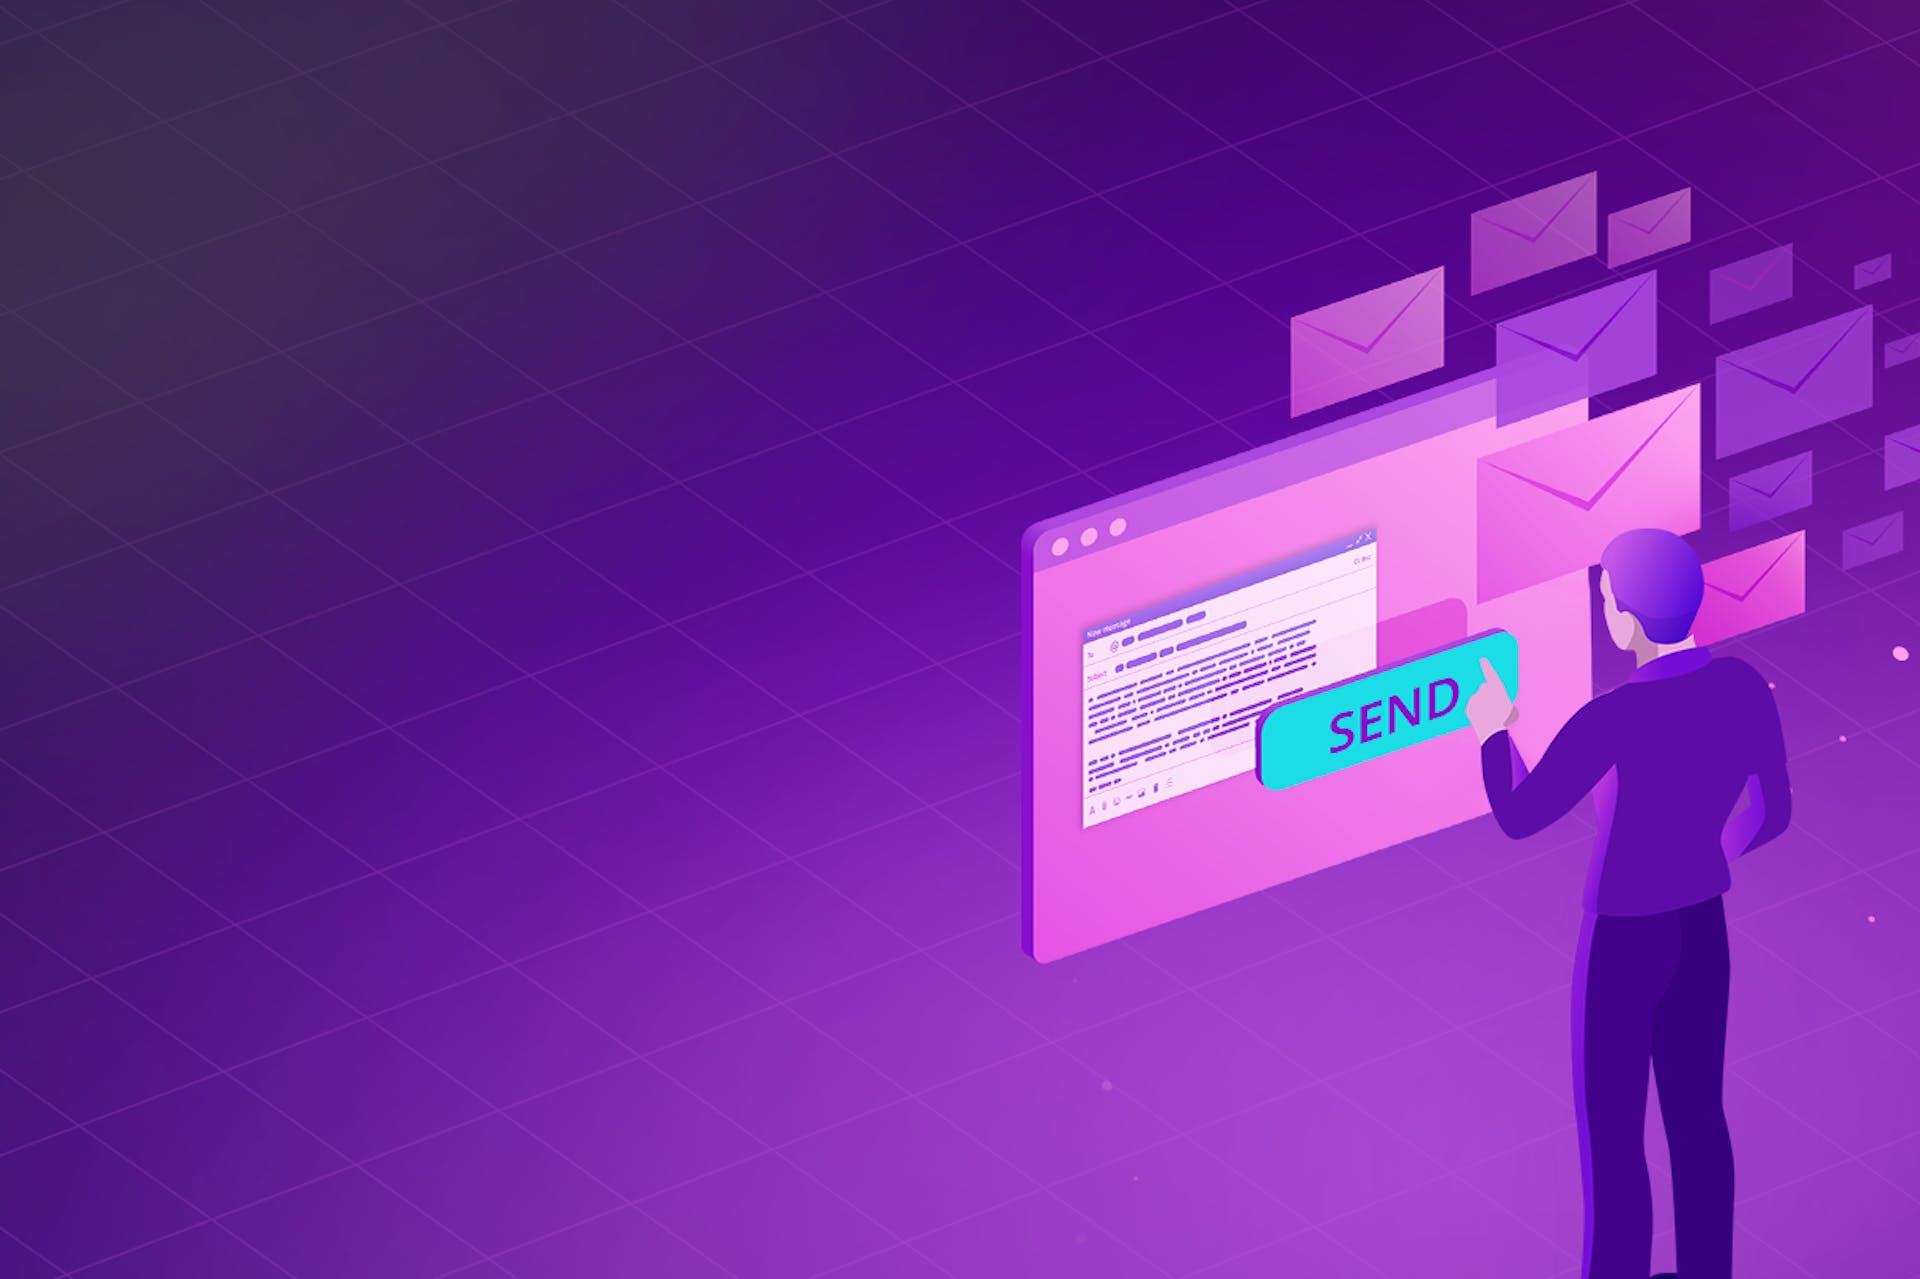 An illustration of a man sending an email against a purple backdrop